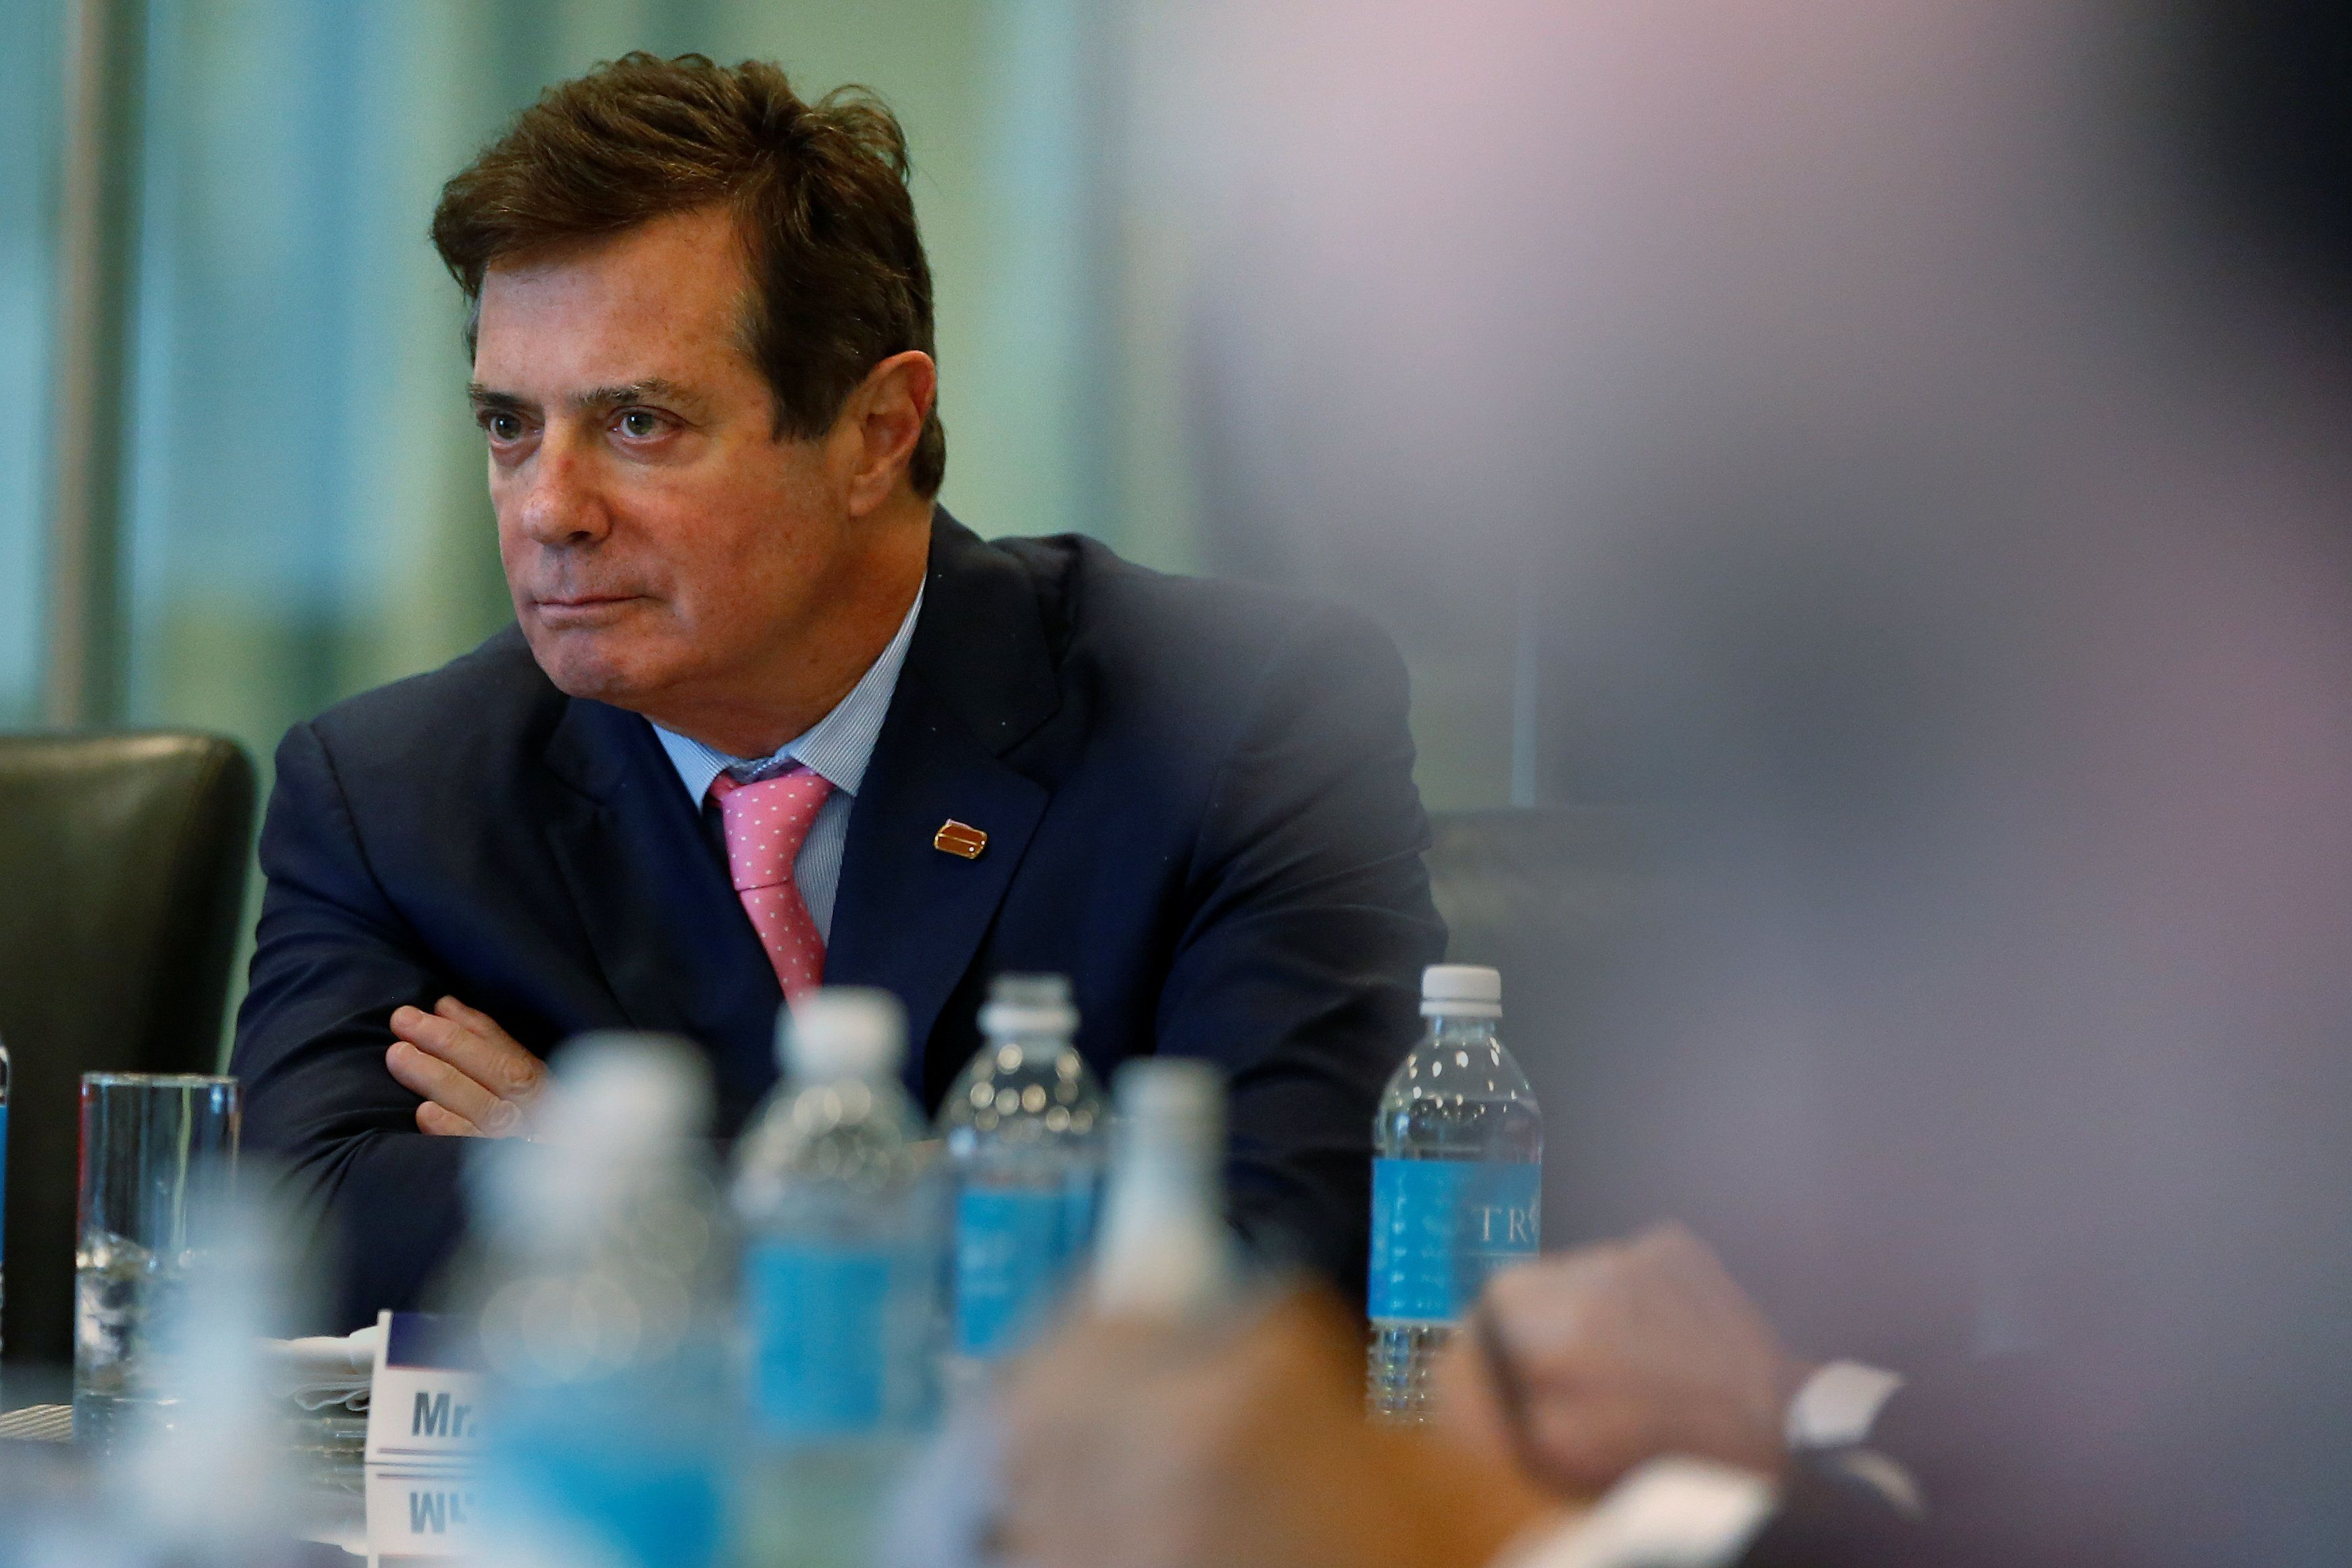 Paul Manafort of Republican presidential nominee Donald Trump's staff listens during a round table discussion on security at Trump Tower in the Manhattan borough of New York, U.S., August 17, 2016. Picture taken August 17, 2016.  REUTERS/Carlo Allegri